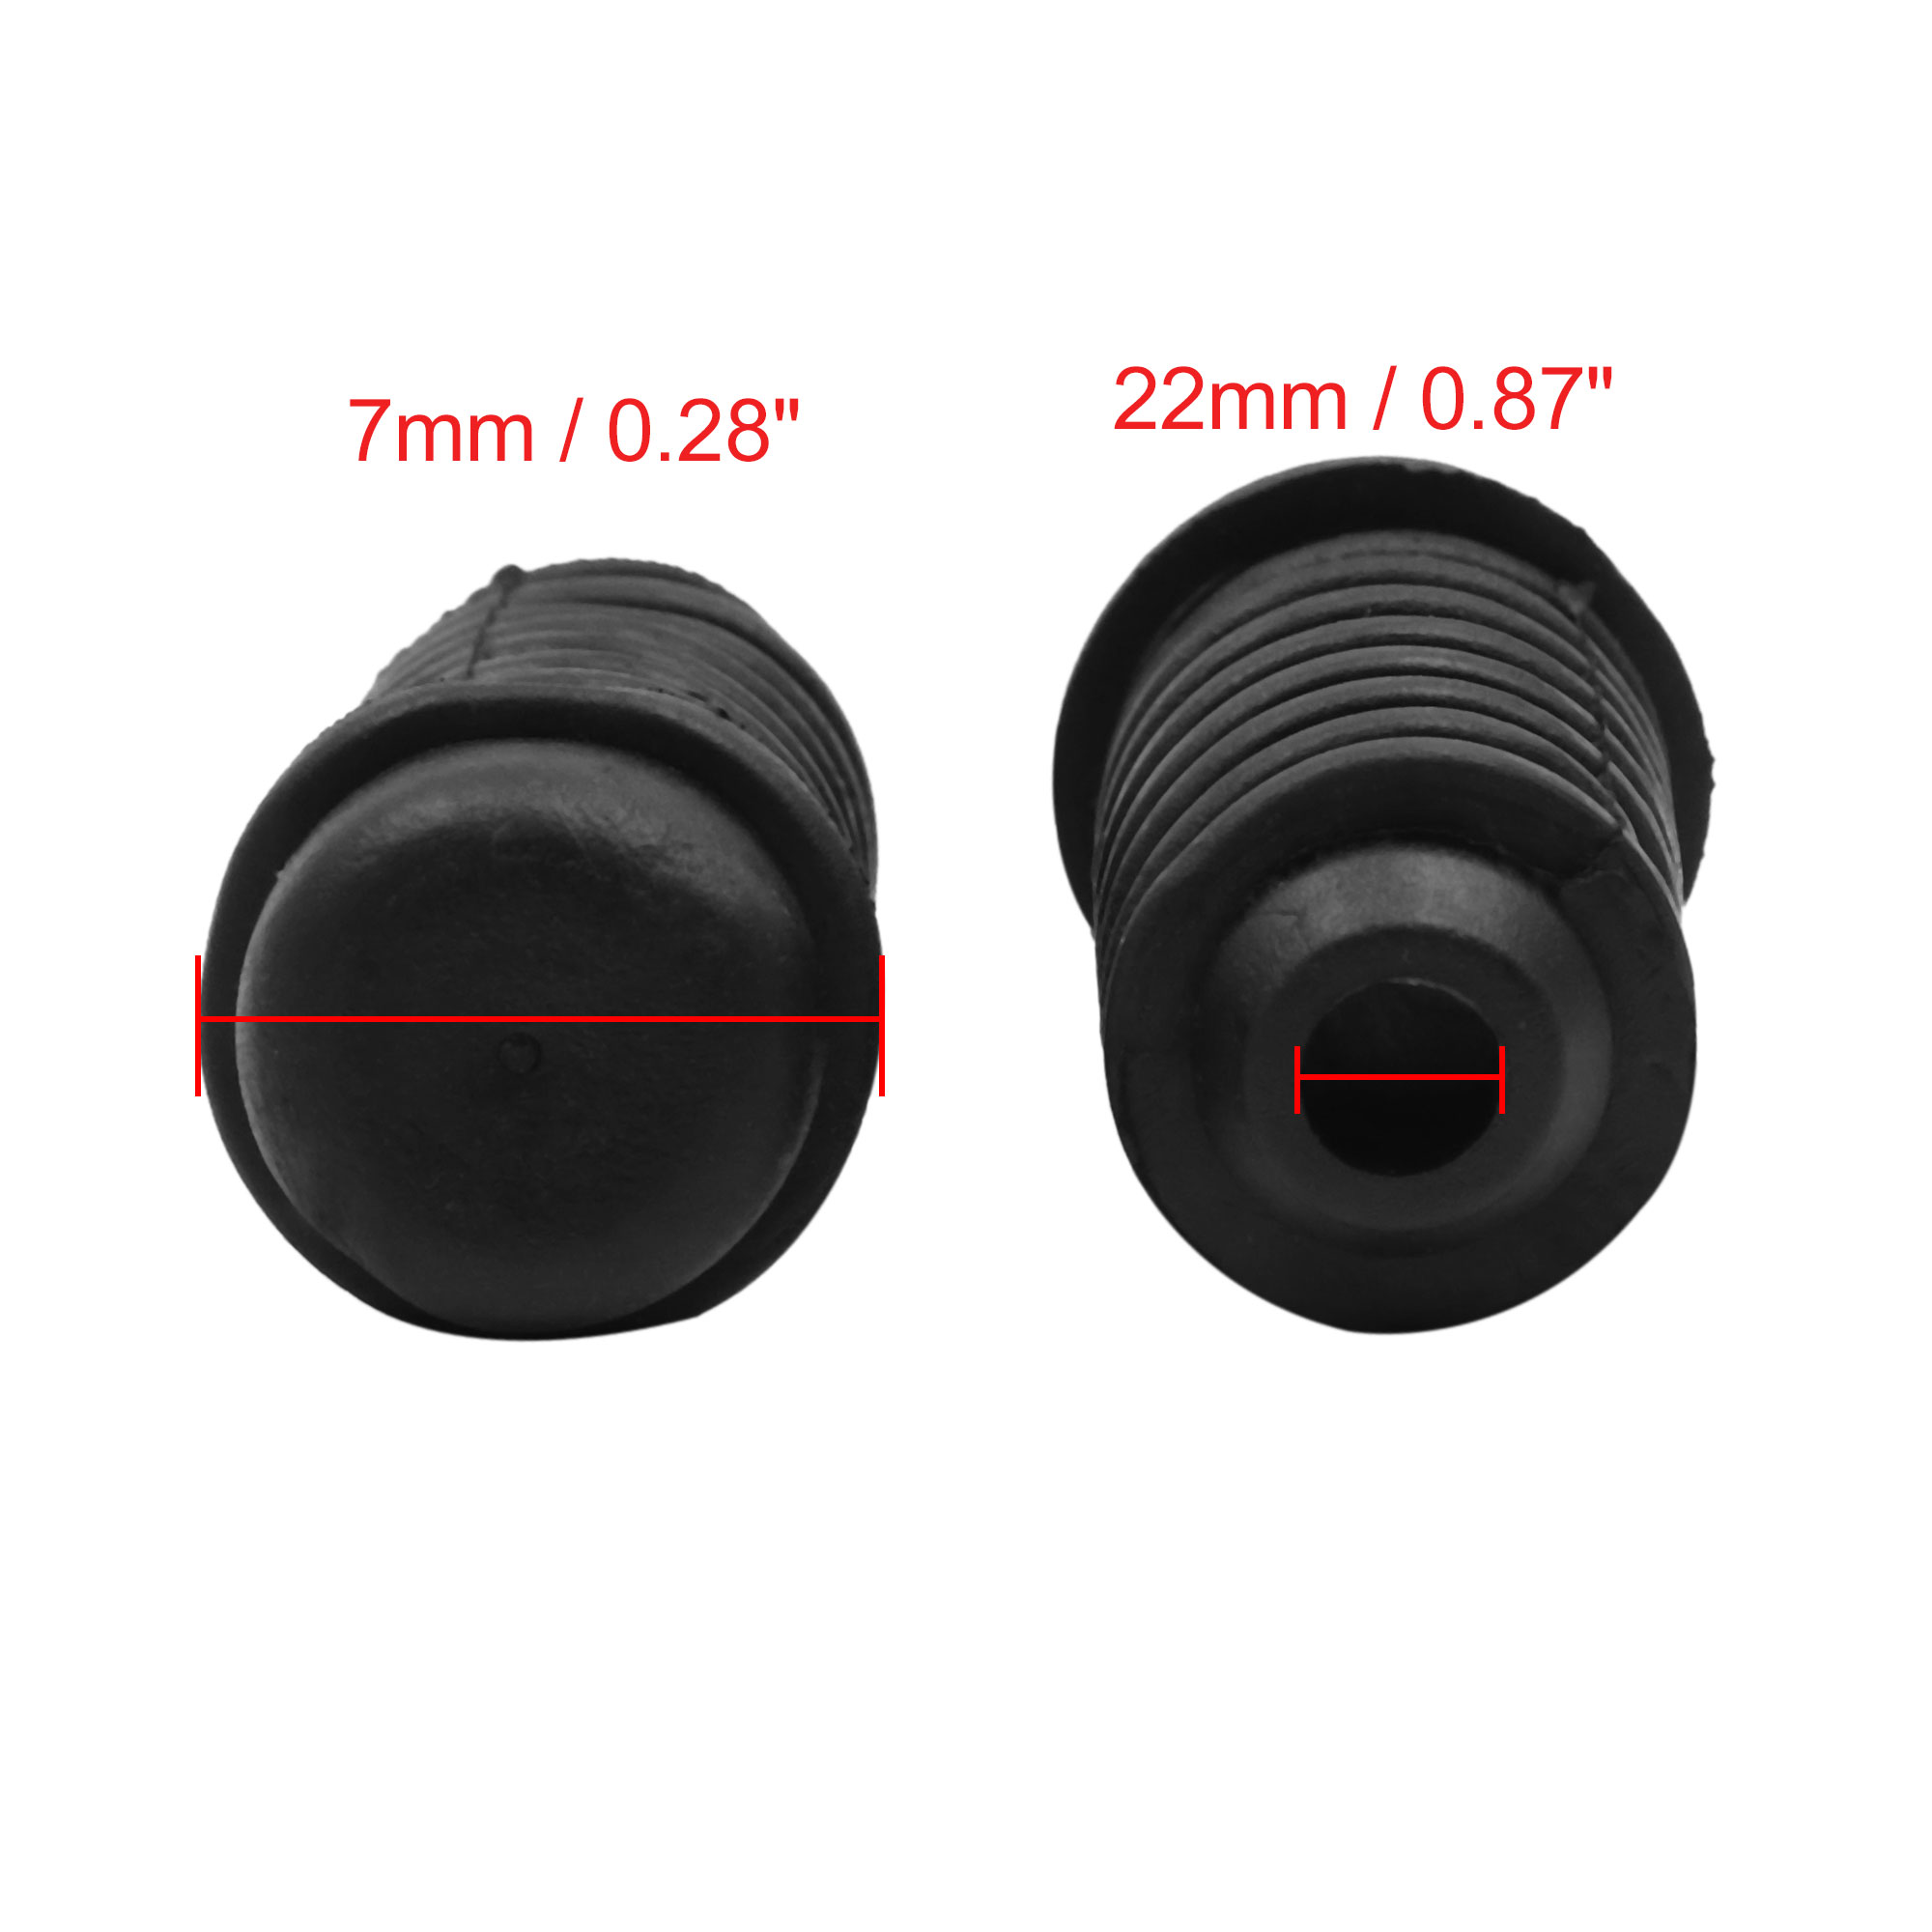 2pcs 22 x 47.5mm Auto Buffer Mount Rubber Block Absorber for Car Door Trunk Hood - image 1 de 4